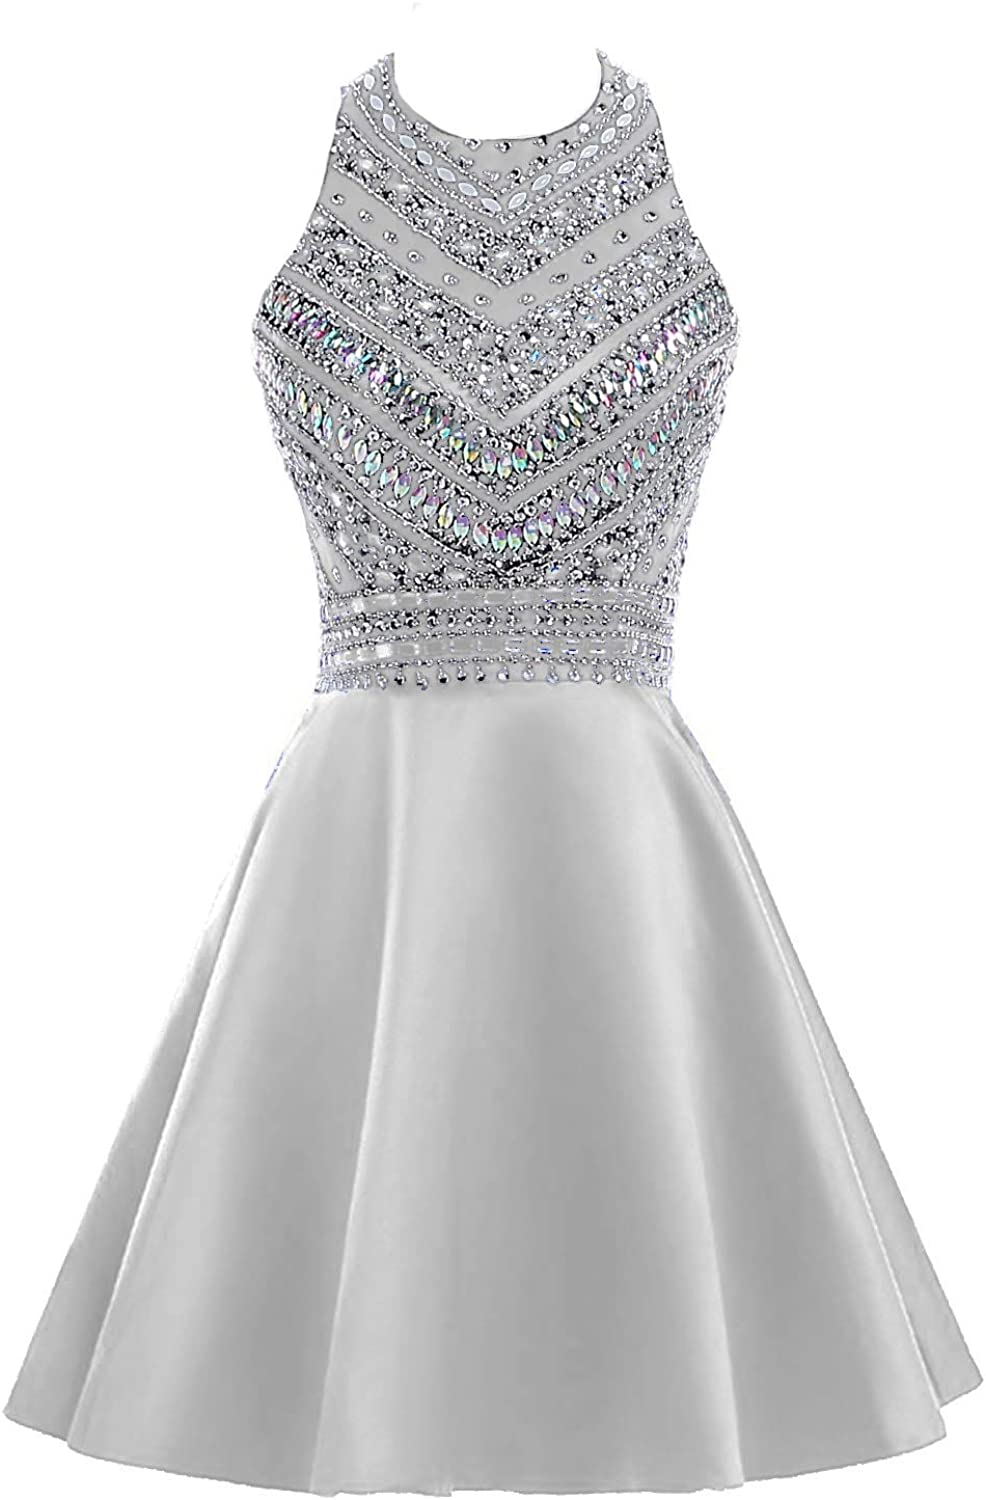 HEIMO Women's Sparkly Beaded Homecoming Dresses Sequins Cocktail Gown for Teens Prom Dress Short H212